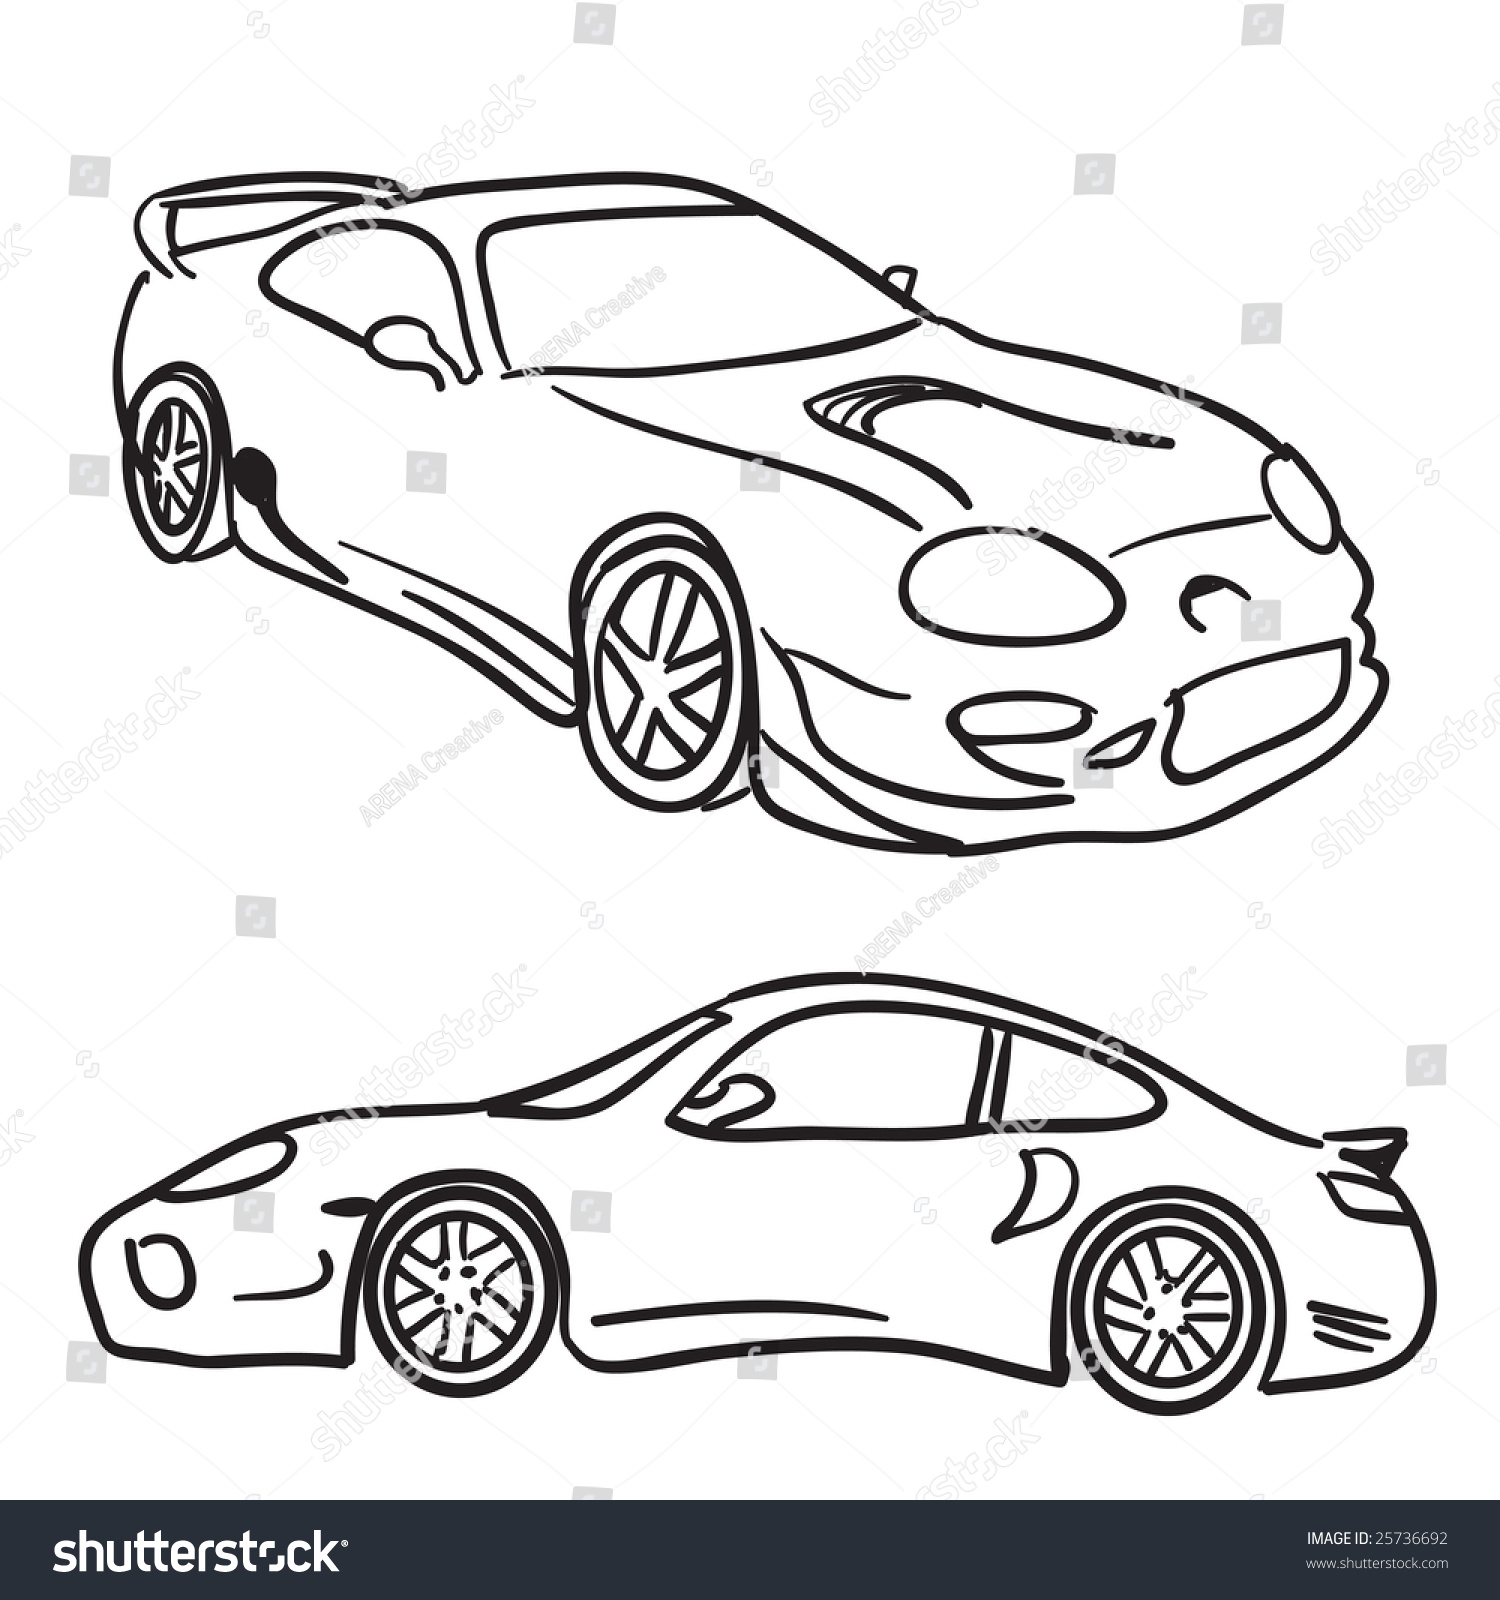 Clip Art Sports Car Drawings Isolated Over White In Vector Format Paint Them Any Color Your Need Or Simply Use As Is Stock Photo